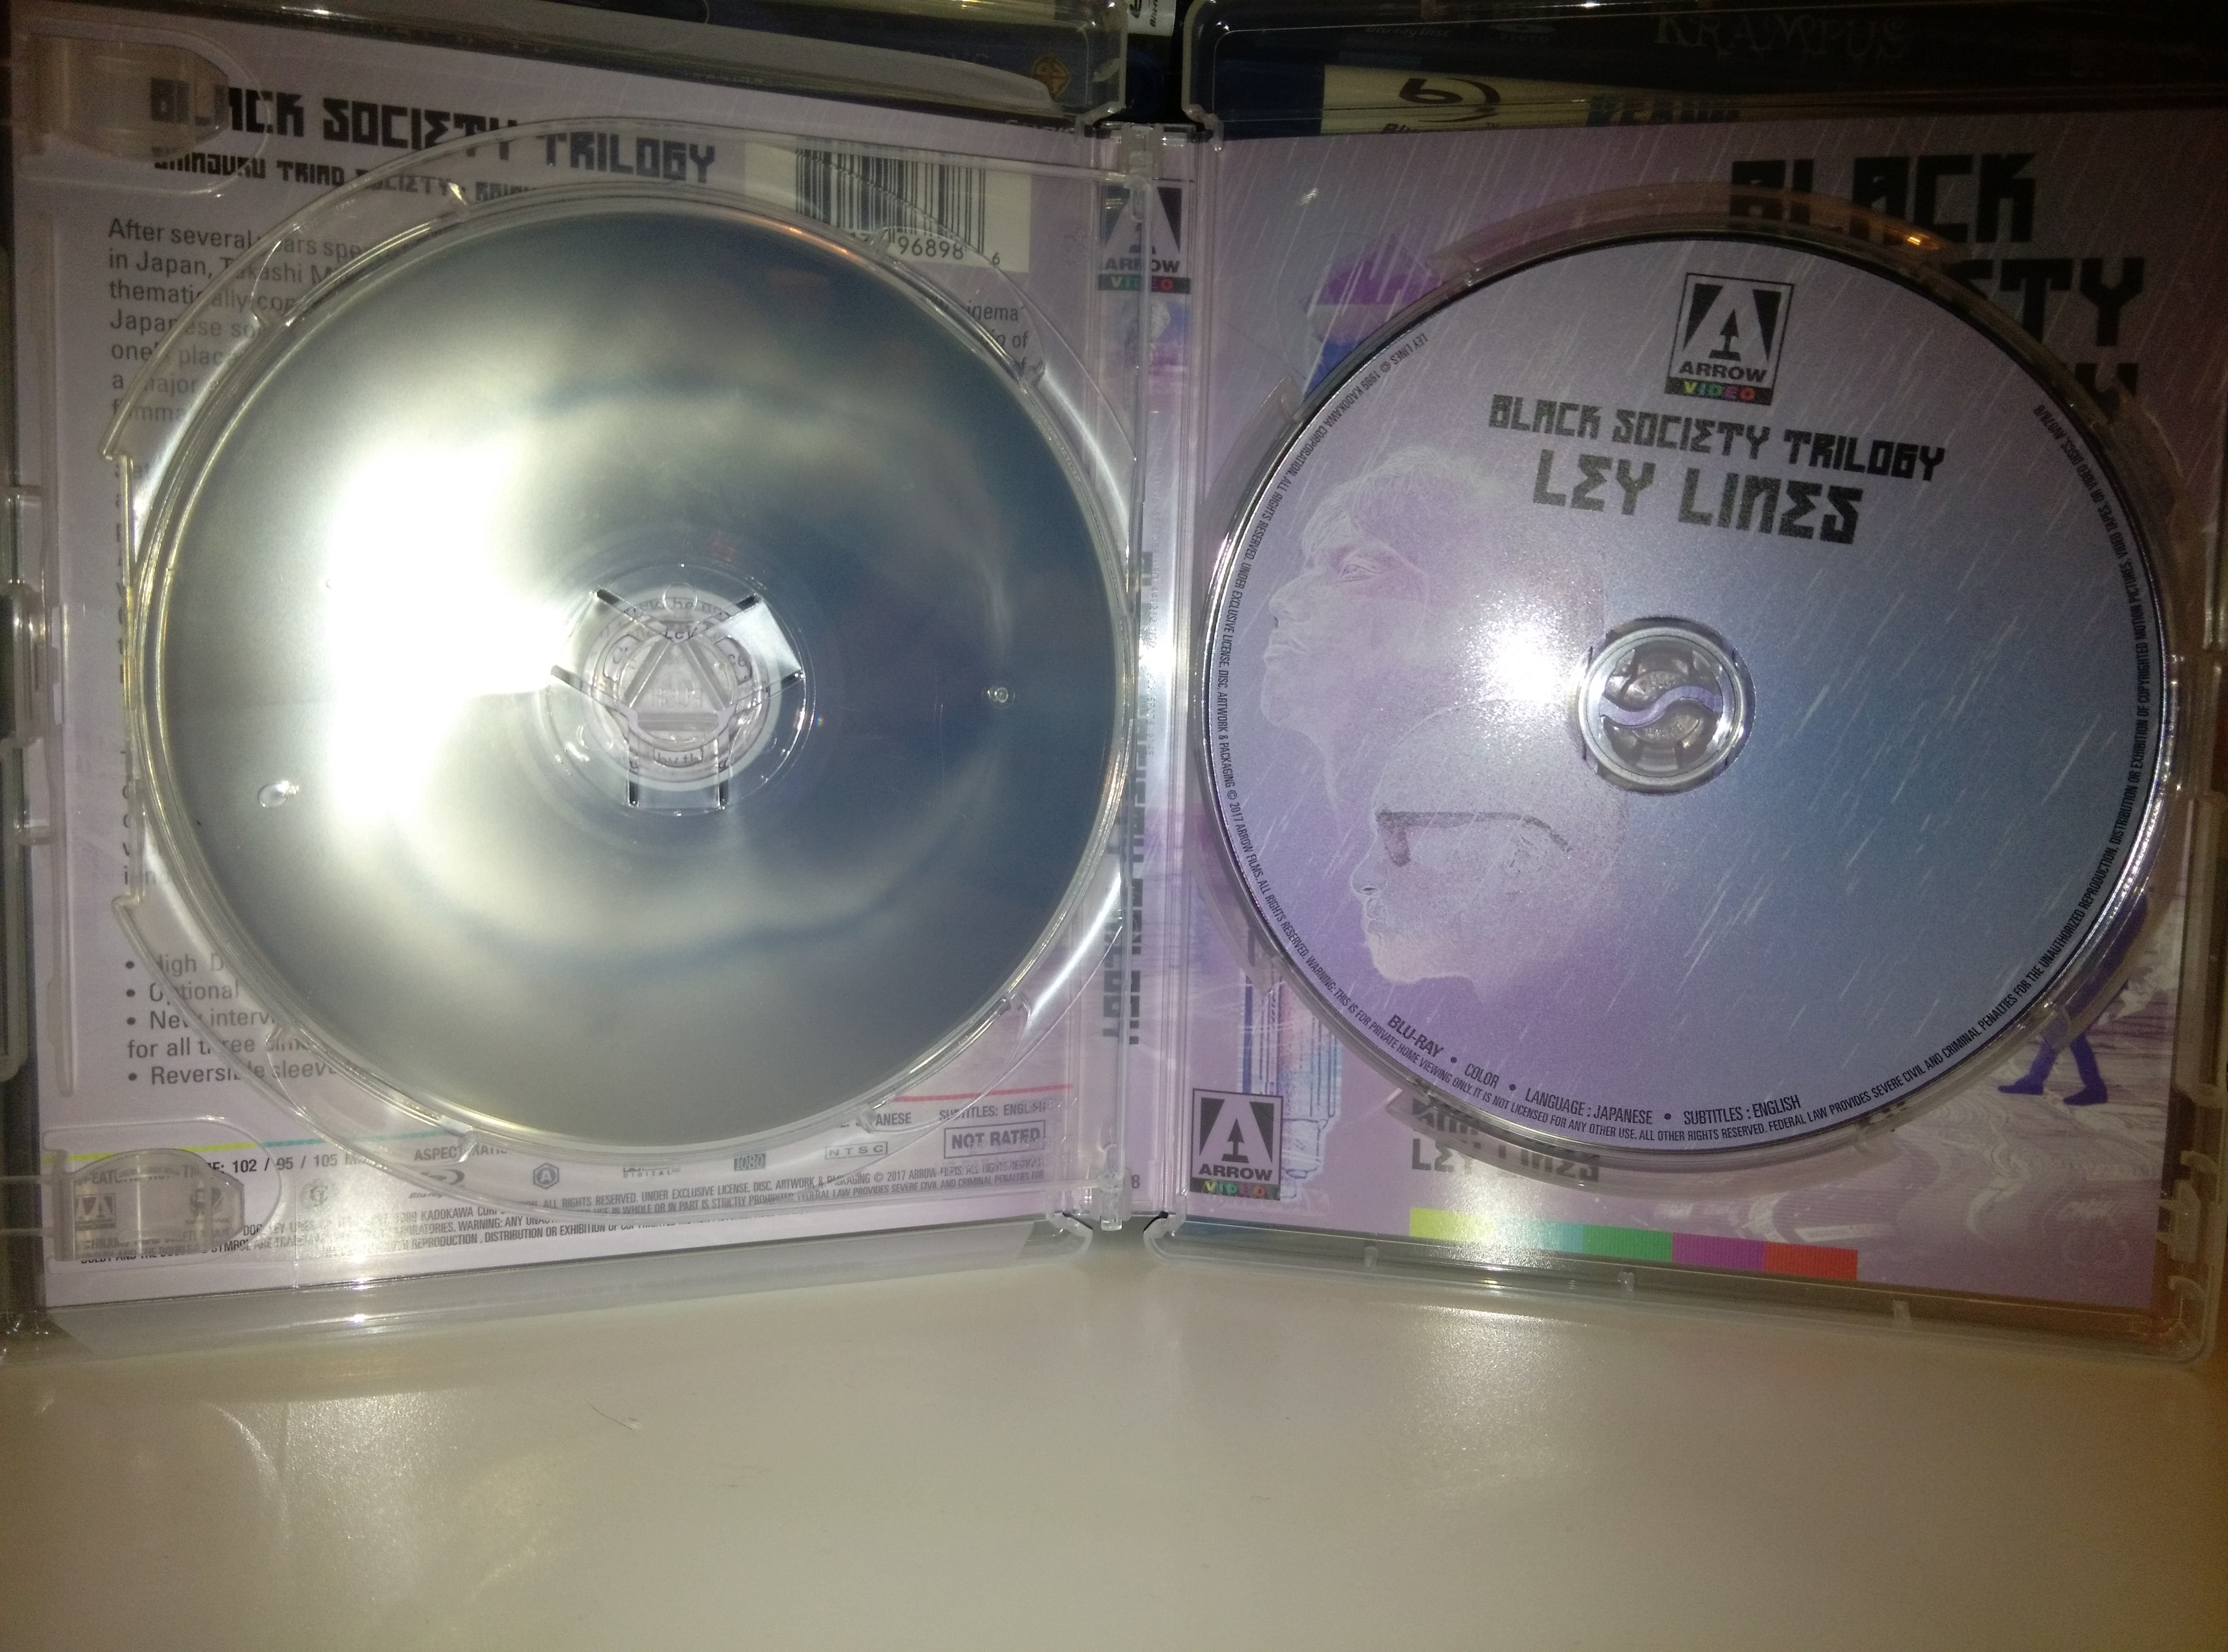 Black Society Trilogy Disc